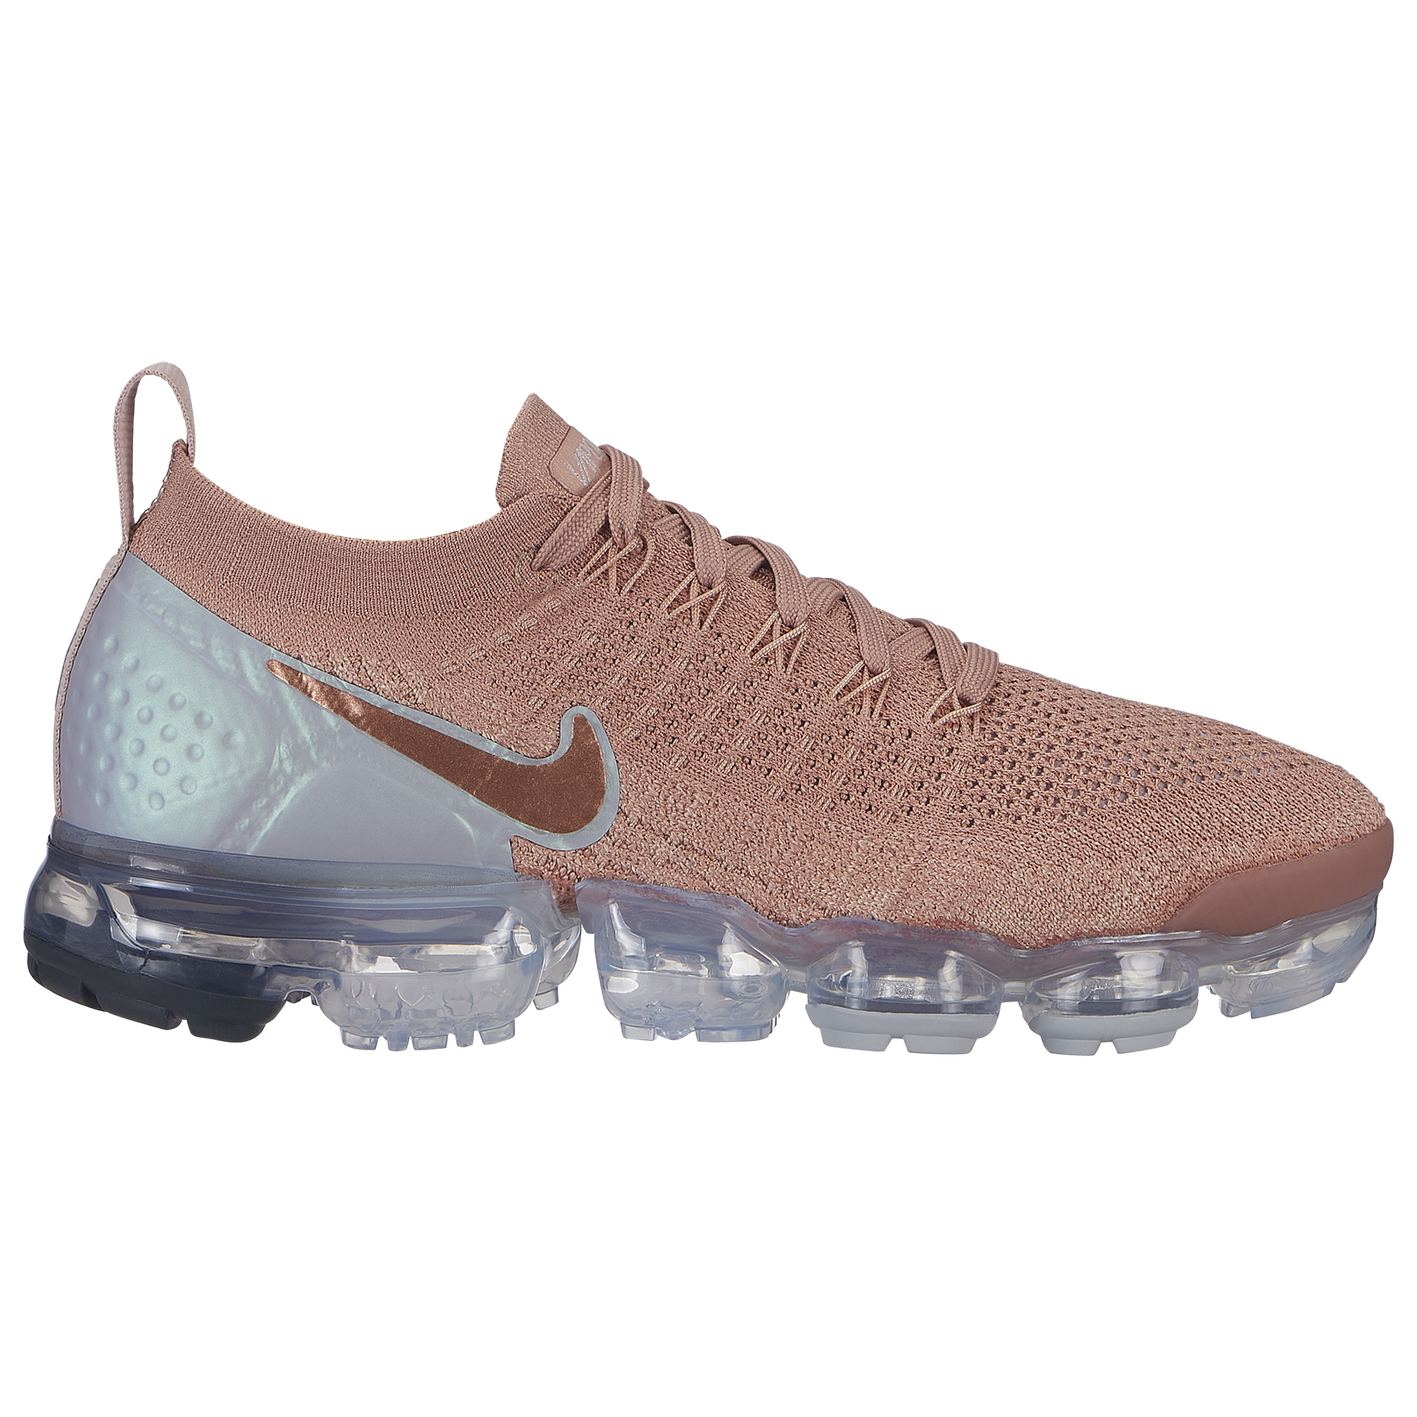 32fd1df8 Nike Air VaporMax Flyknit 2 - Women's - Casual - Shoes - Rose Gold ...